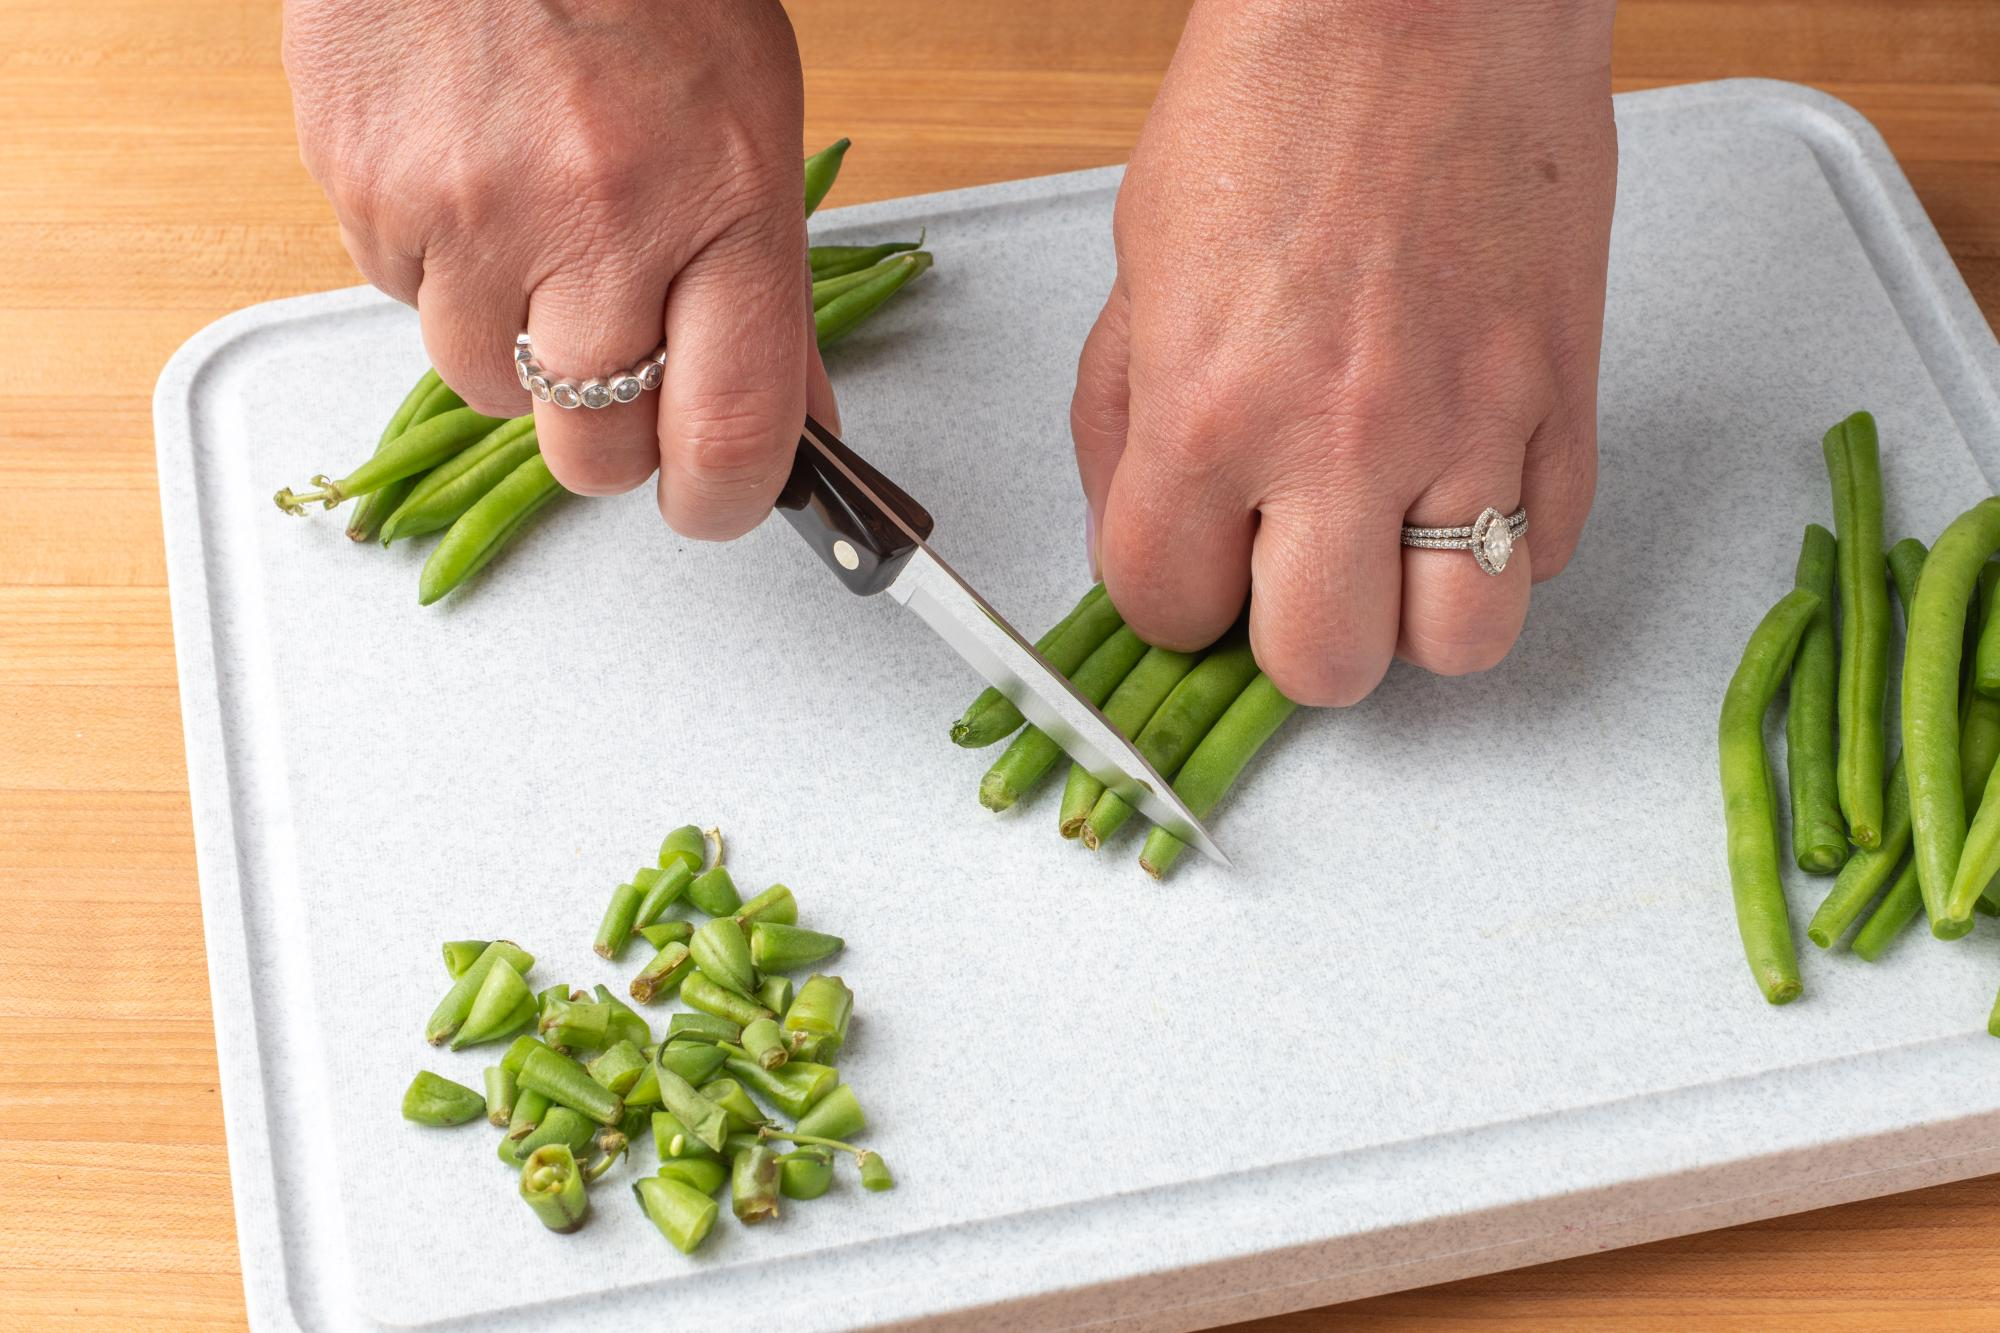 Trimming ends off the green beans.